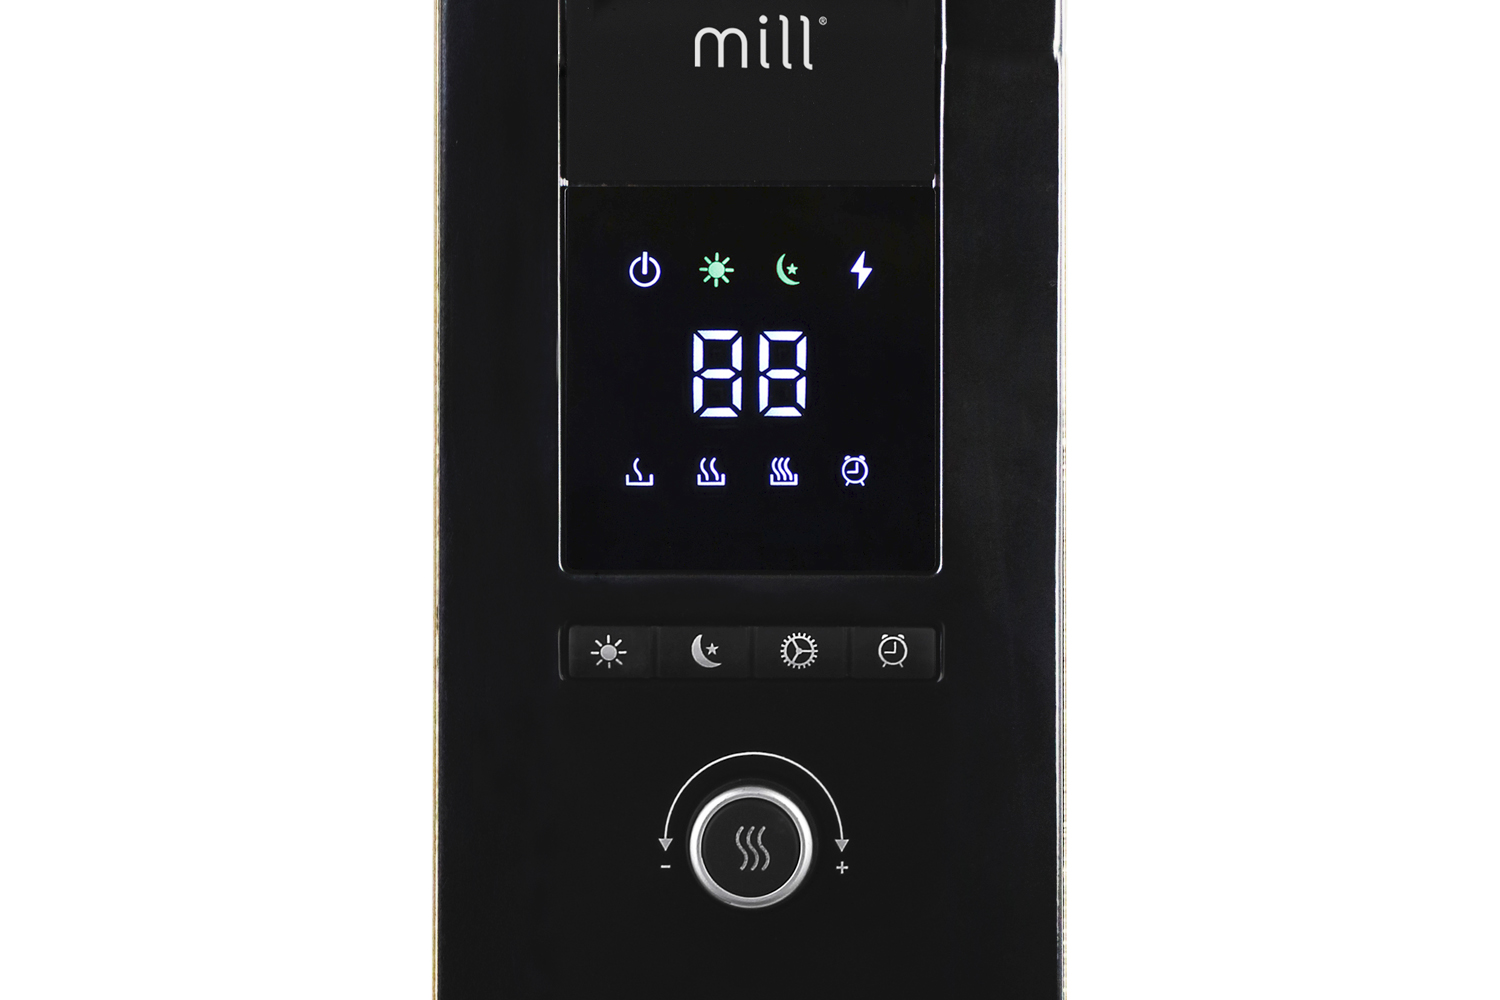 Mill AB-H1000 DN Glass oil heater controls zoomed in